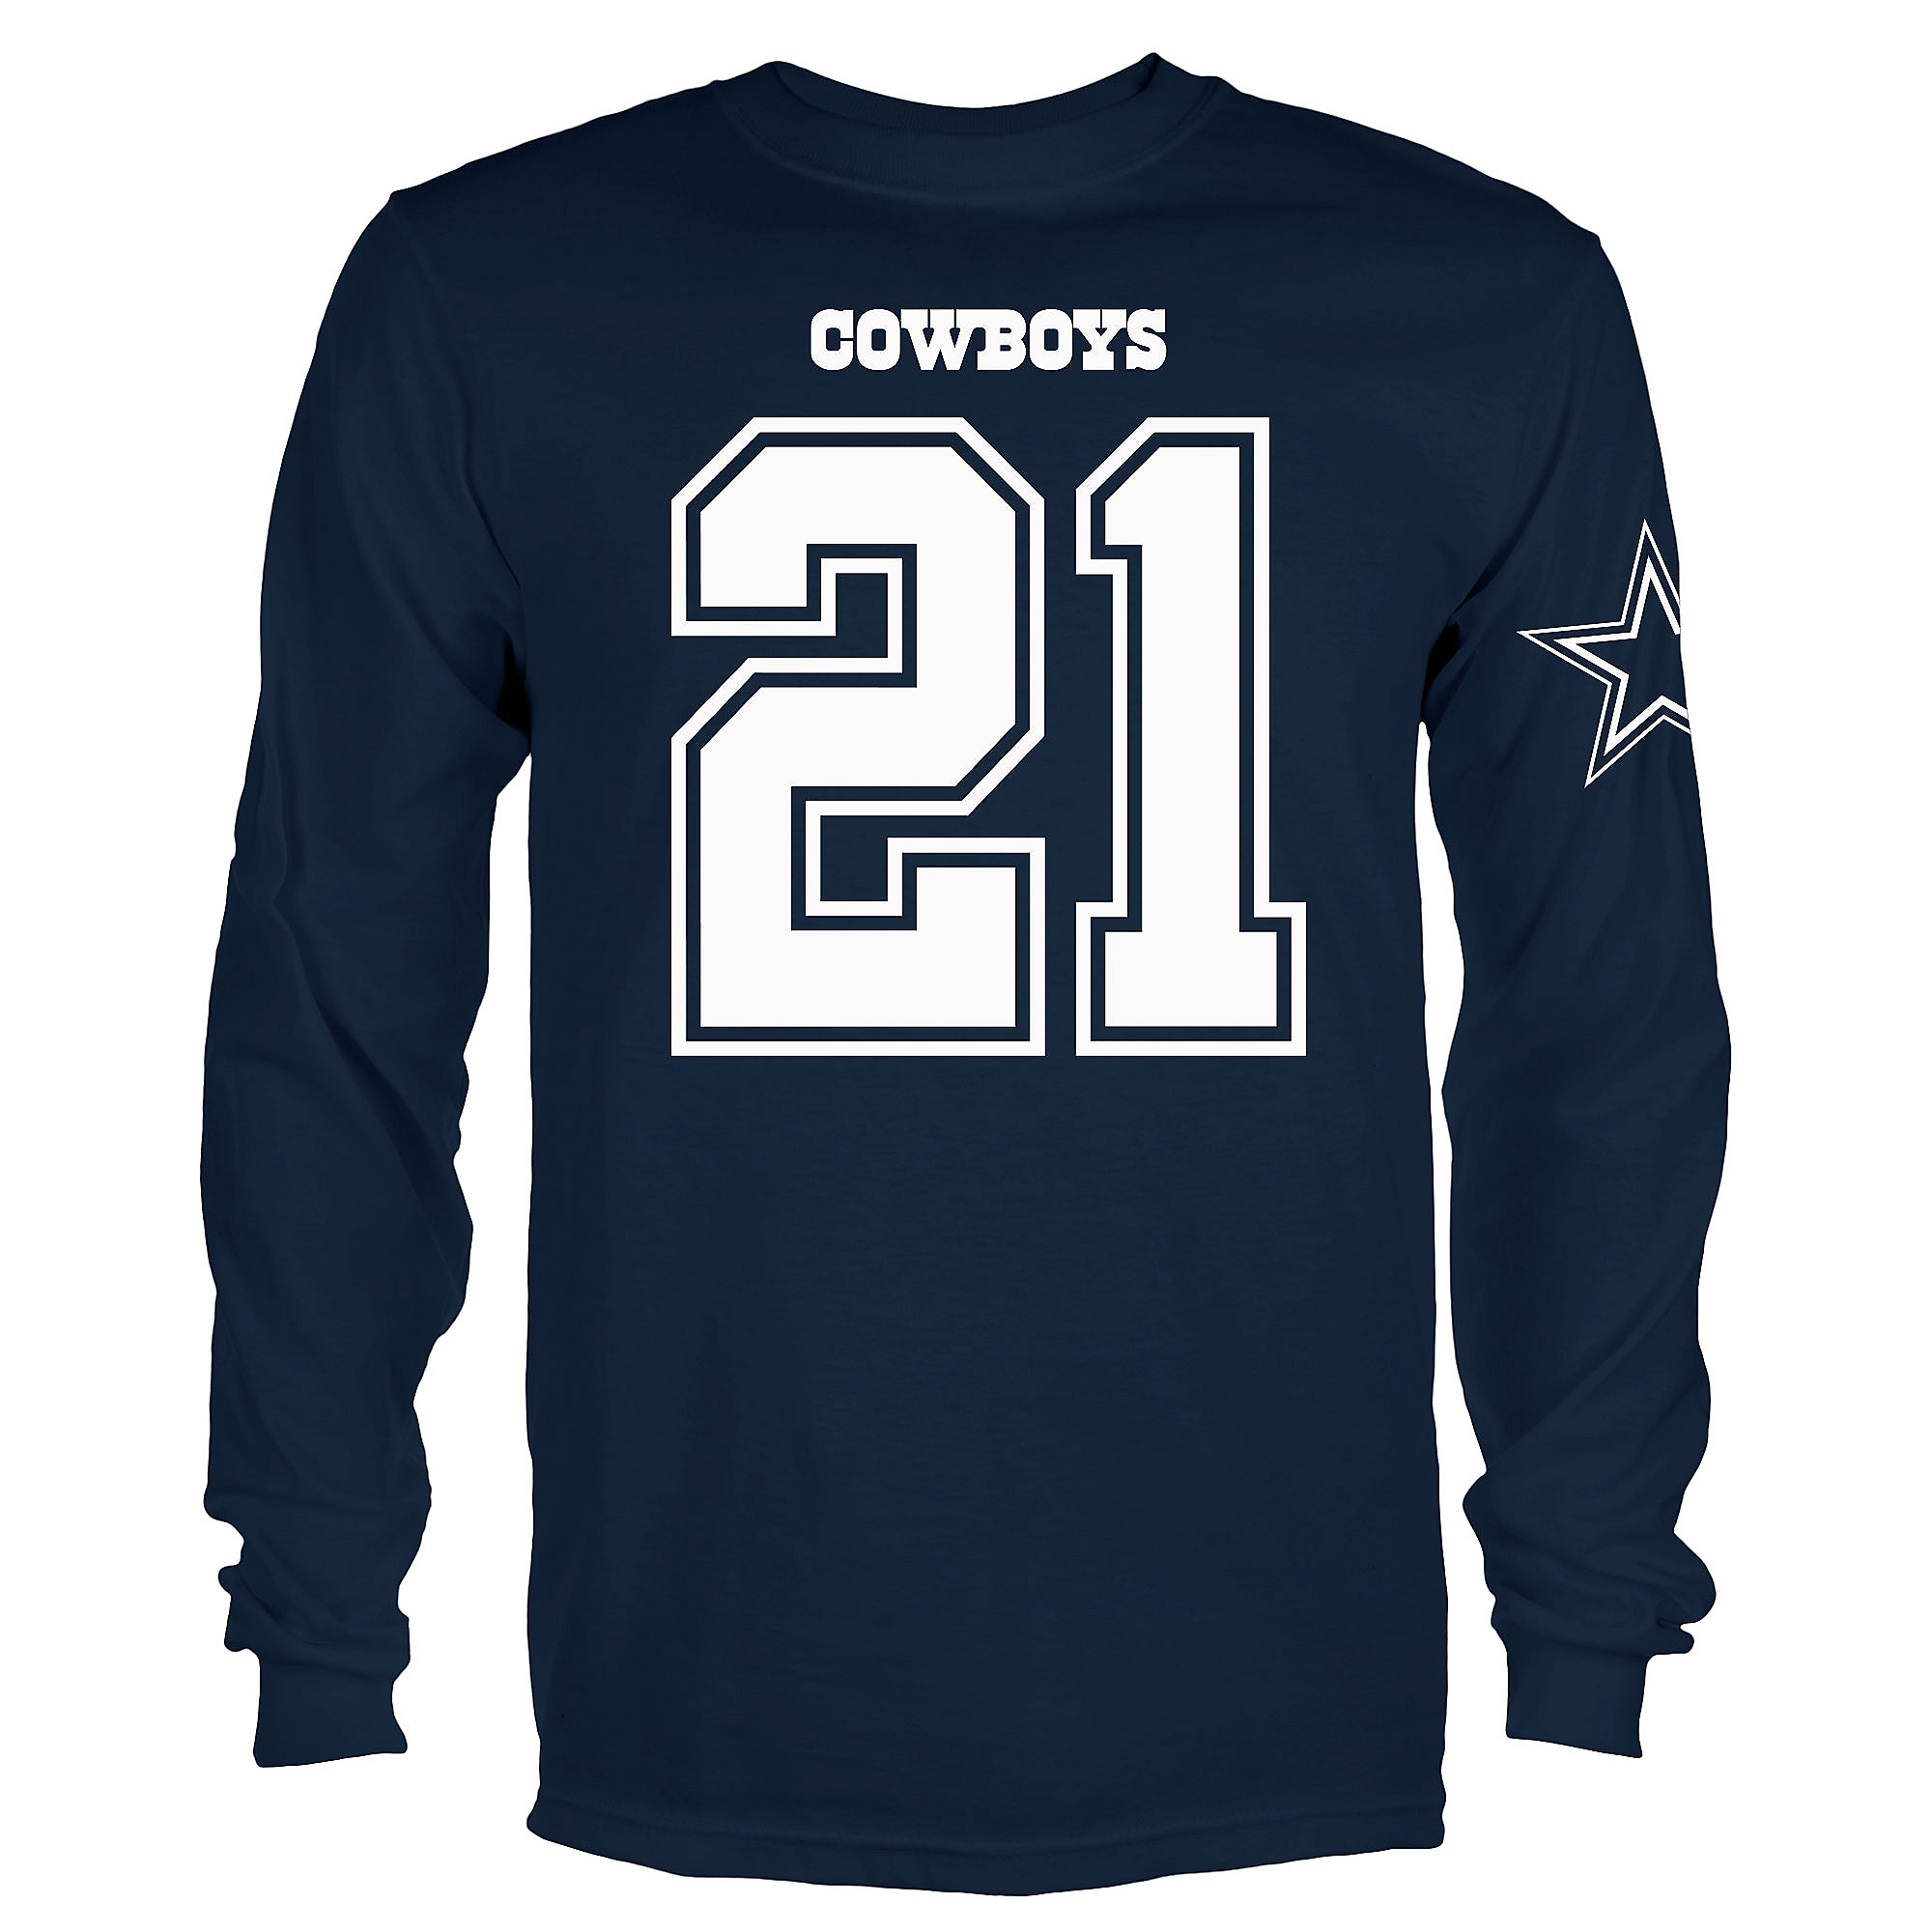 1c221c58 Dallas Cowboys Youth Ezekiel Elliott #21 Long Sleeve Player Tee ...